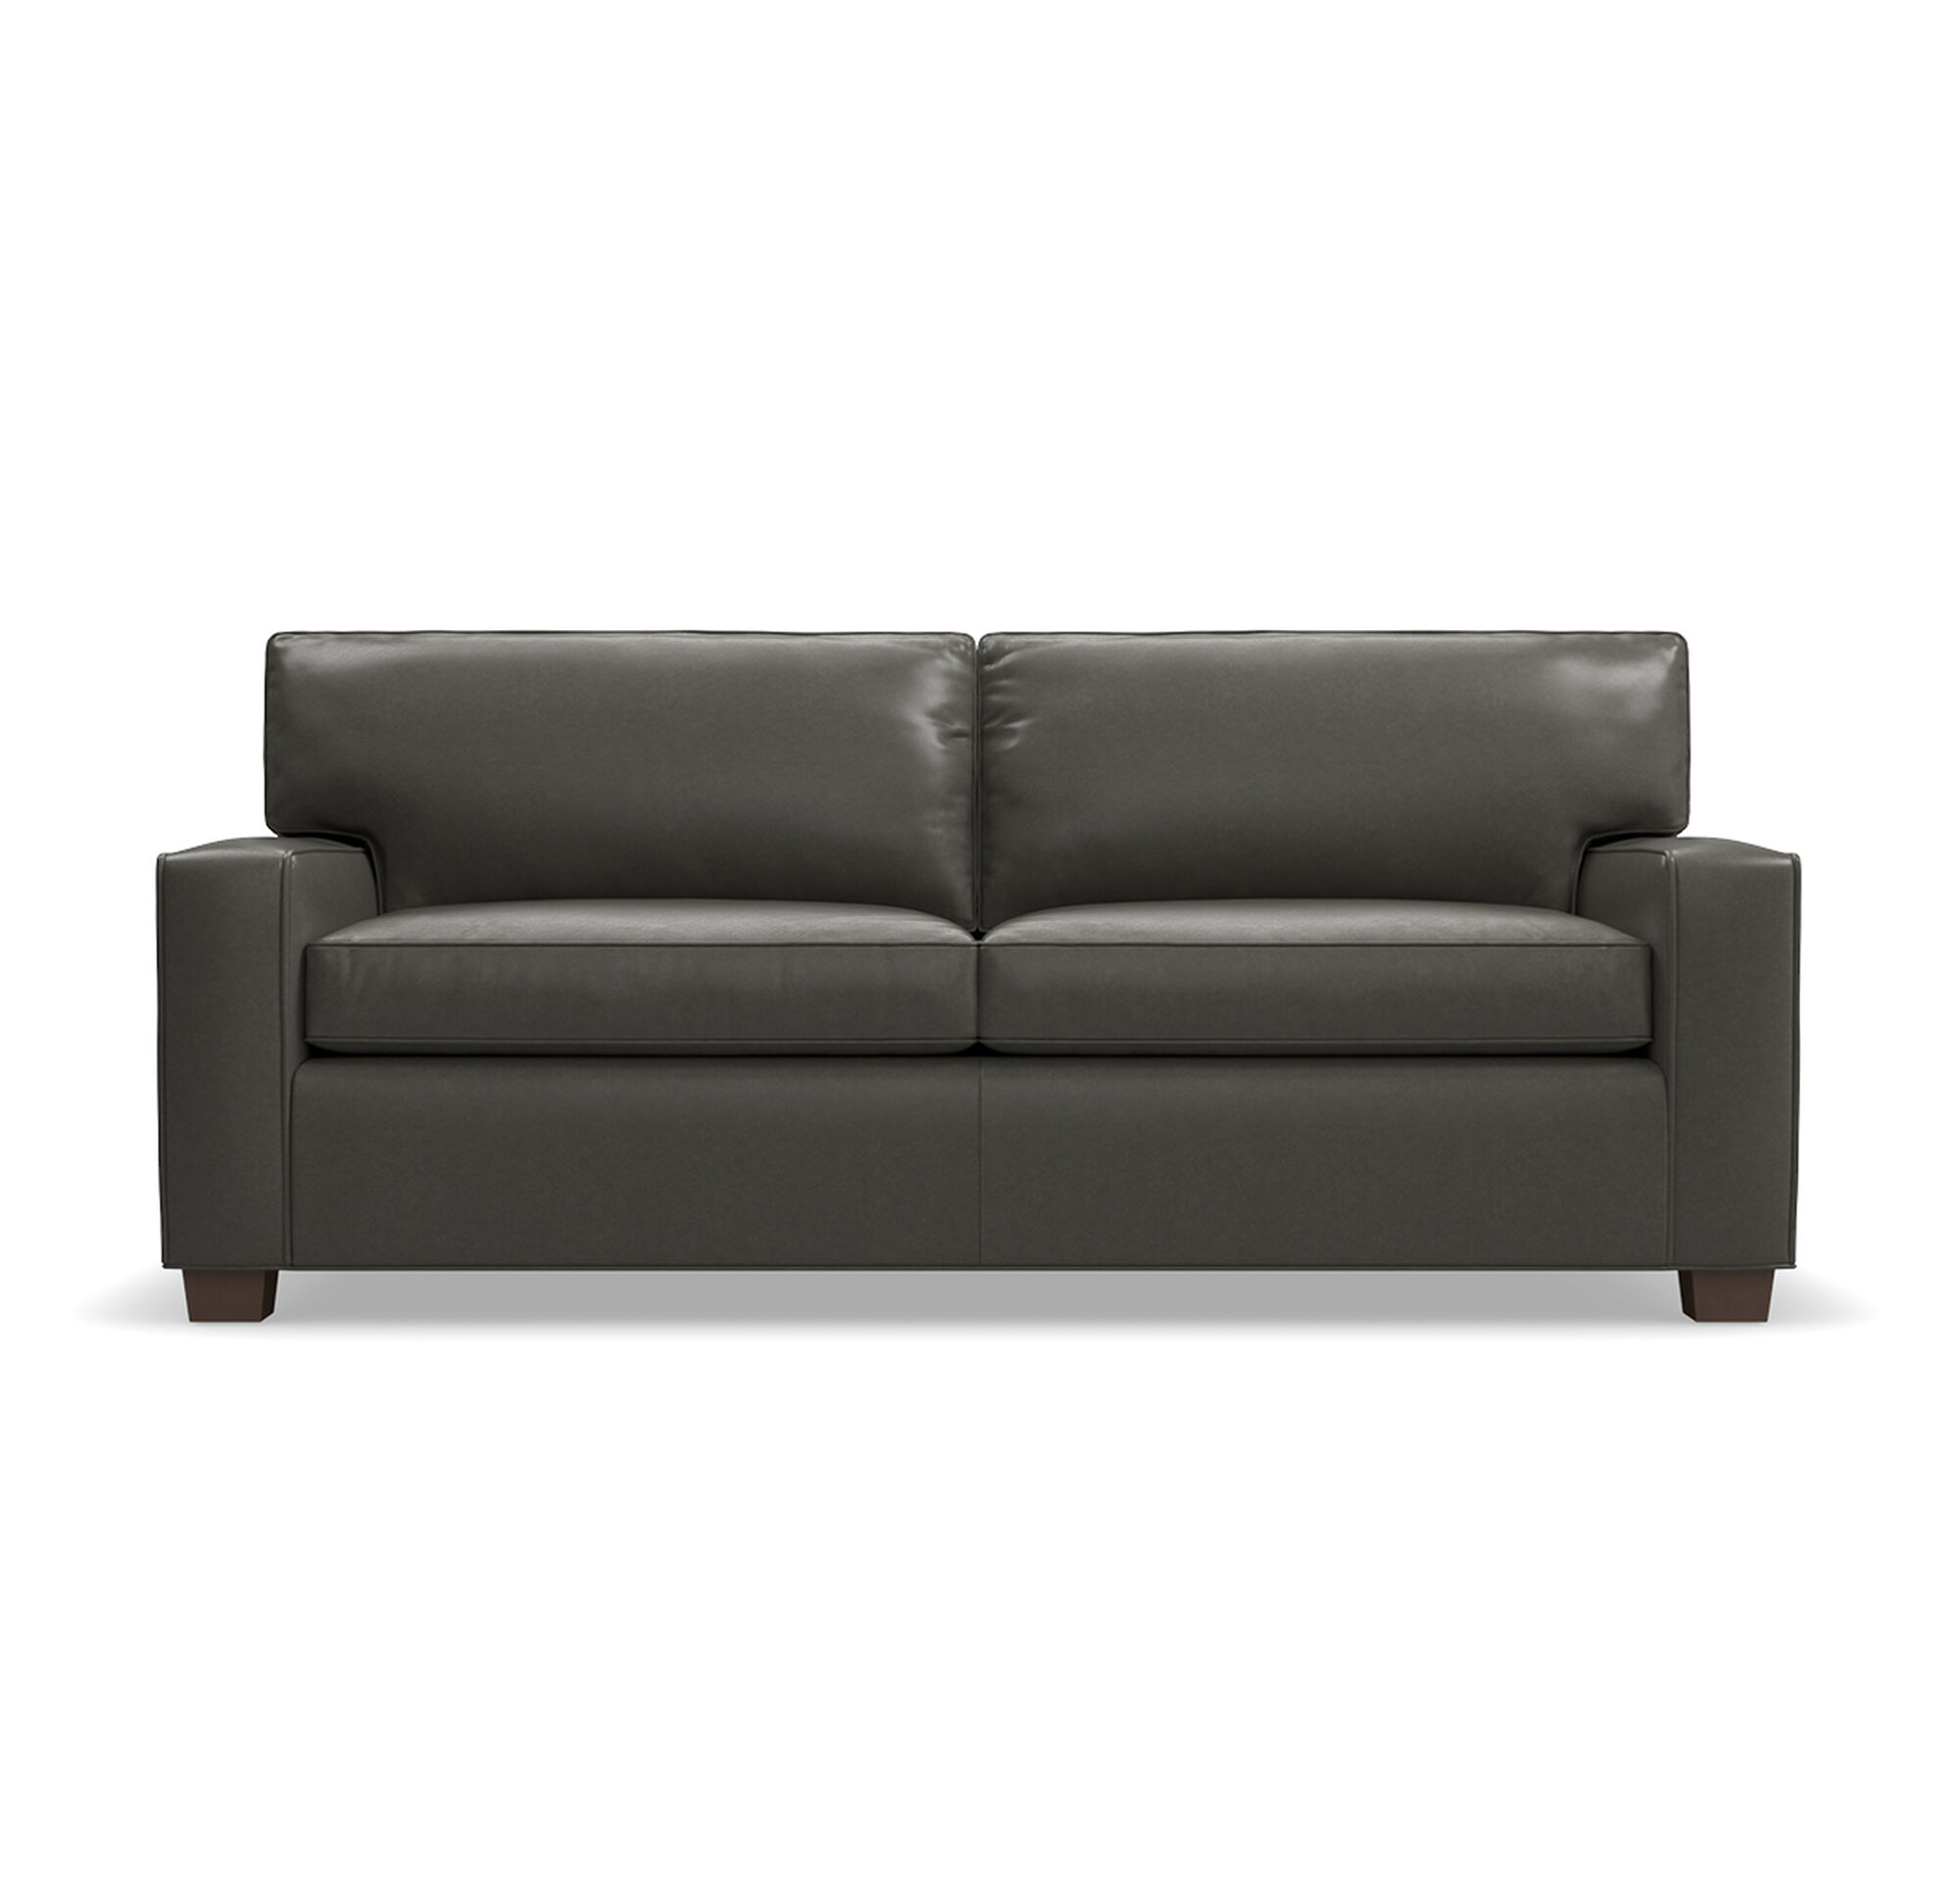 alex leather super luxe queen sleeper sofa. Black Bedroom Furniture Sets. Home Design Ideas